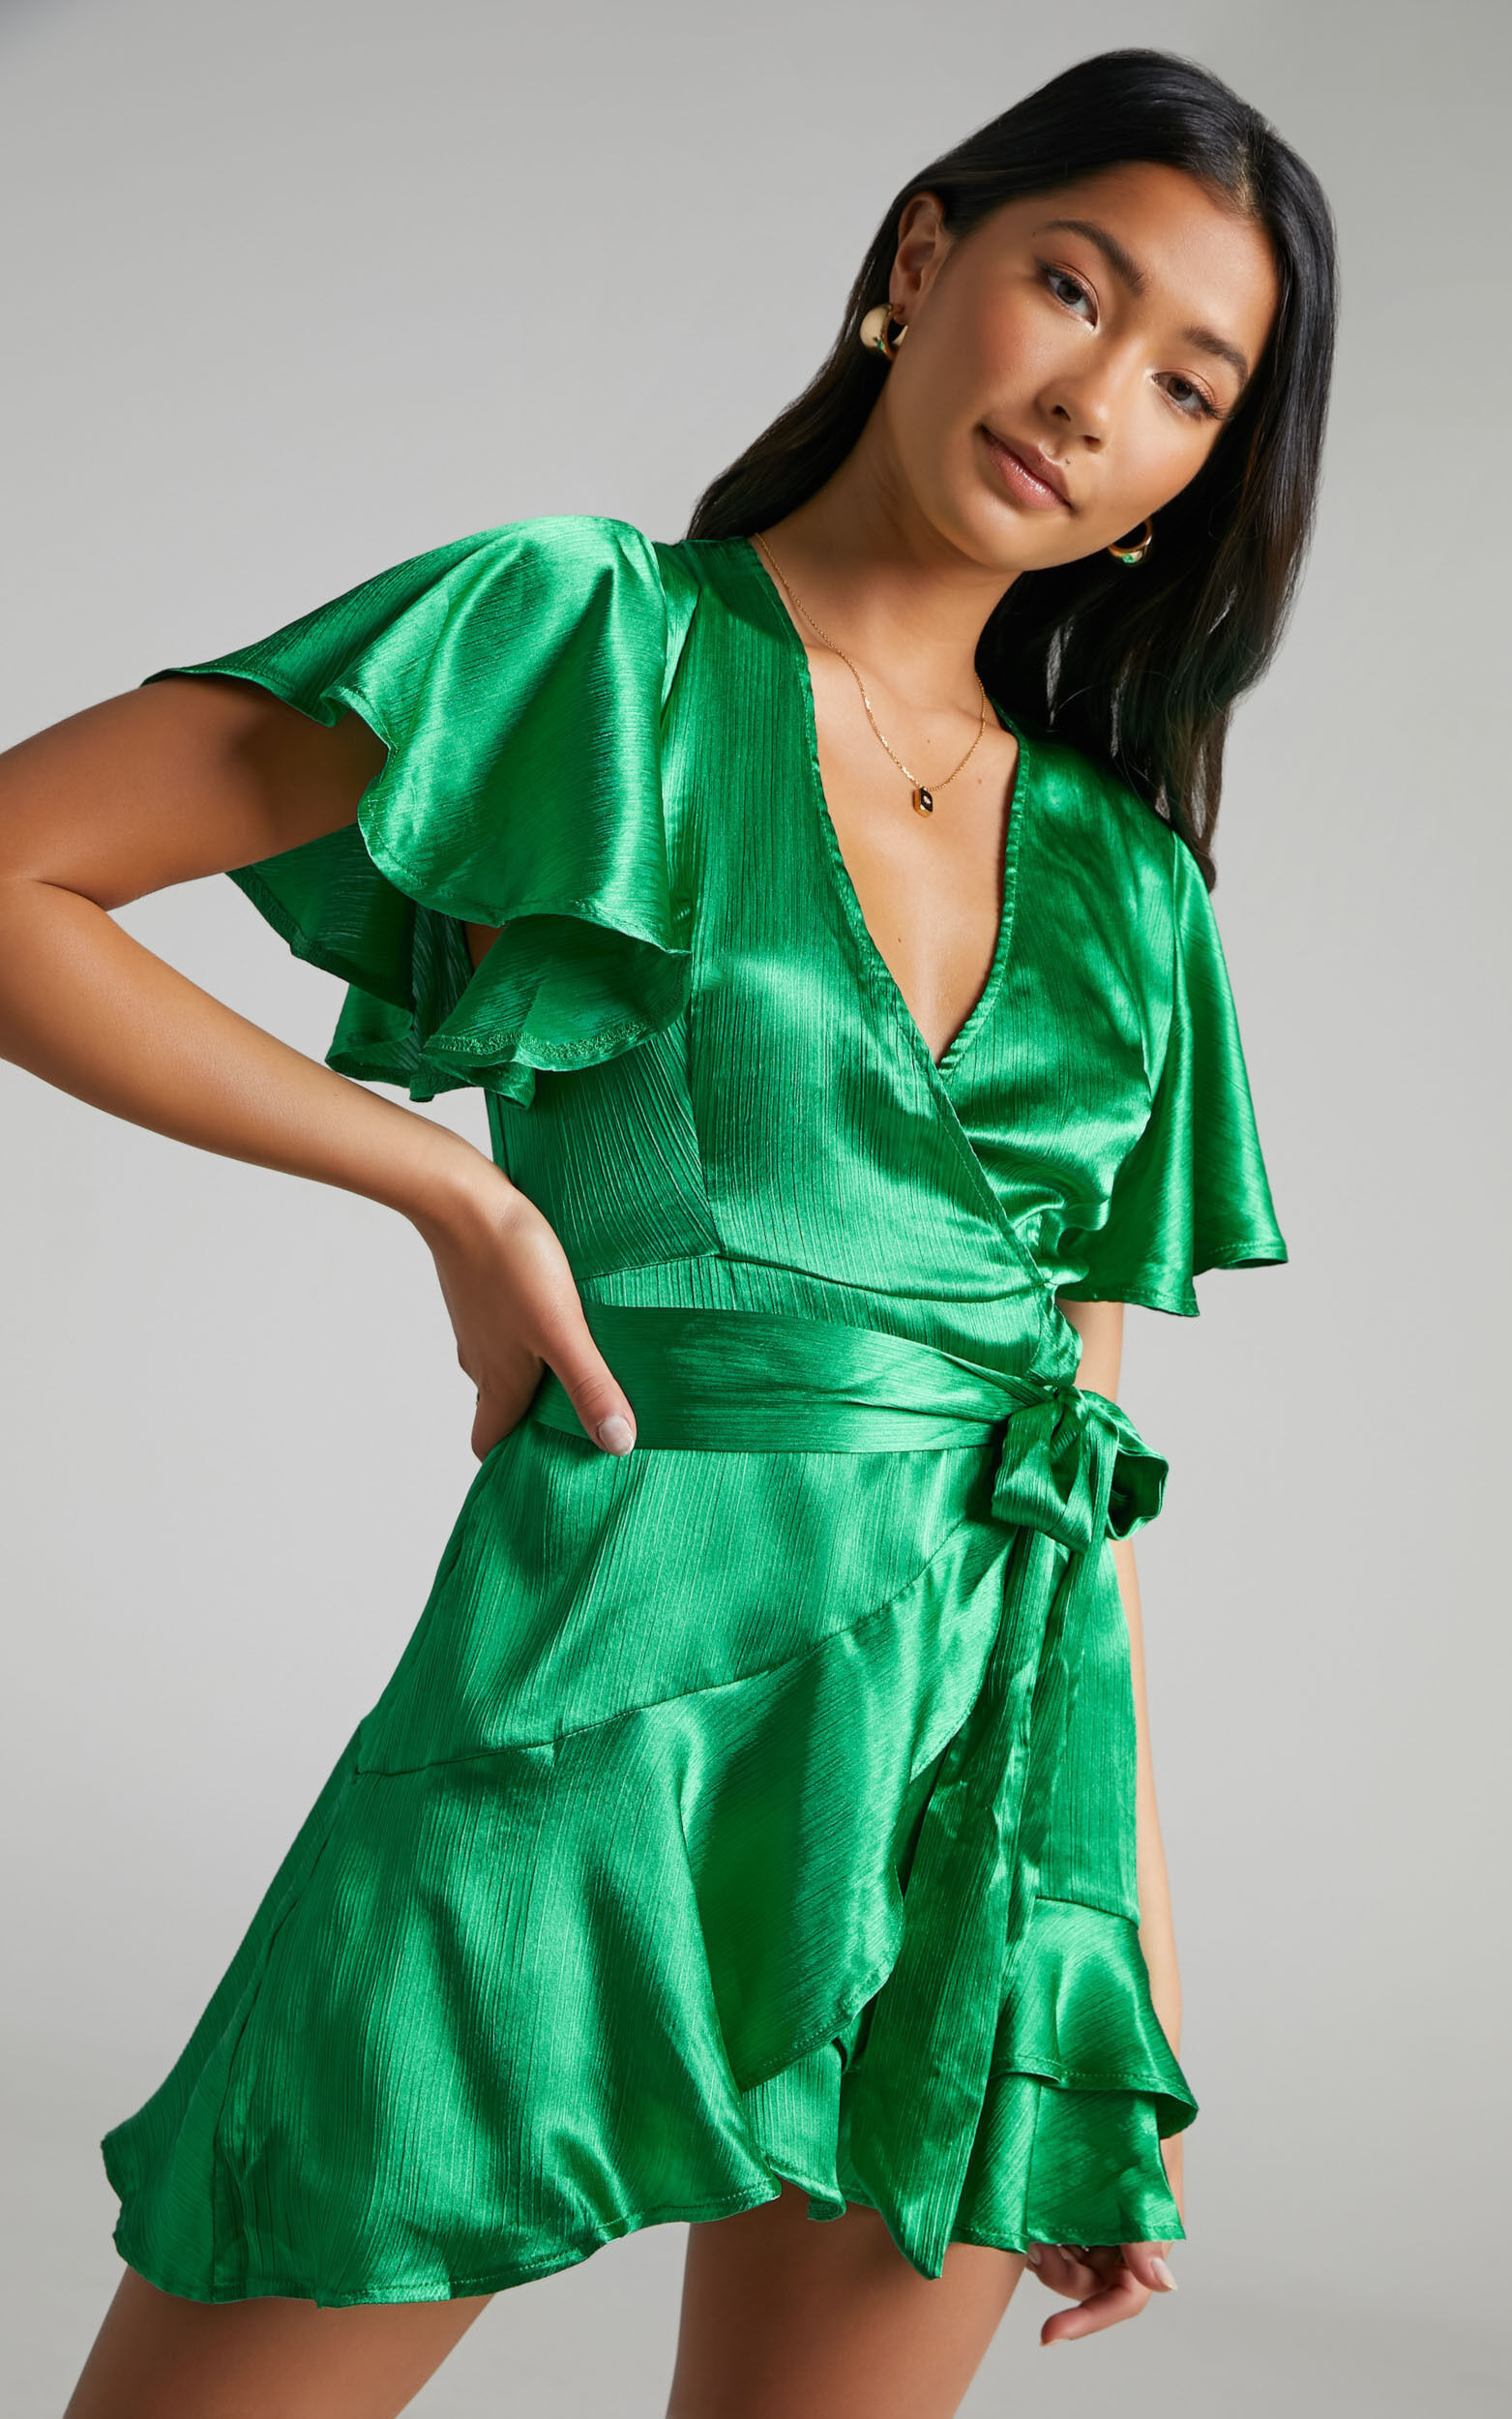 All I Want To Be Ruffle Mini Dress in Green Satin - 04, GRN2, super-hi-res image number null